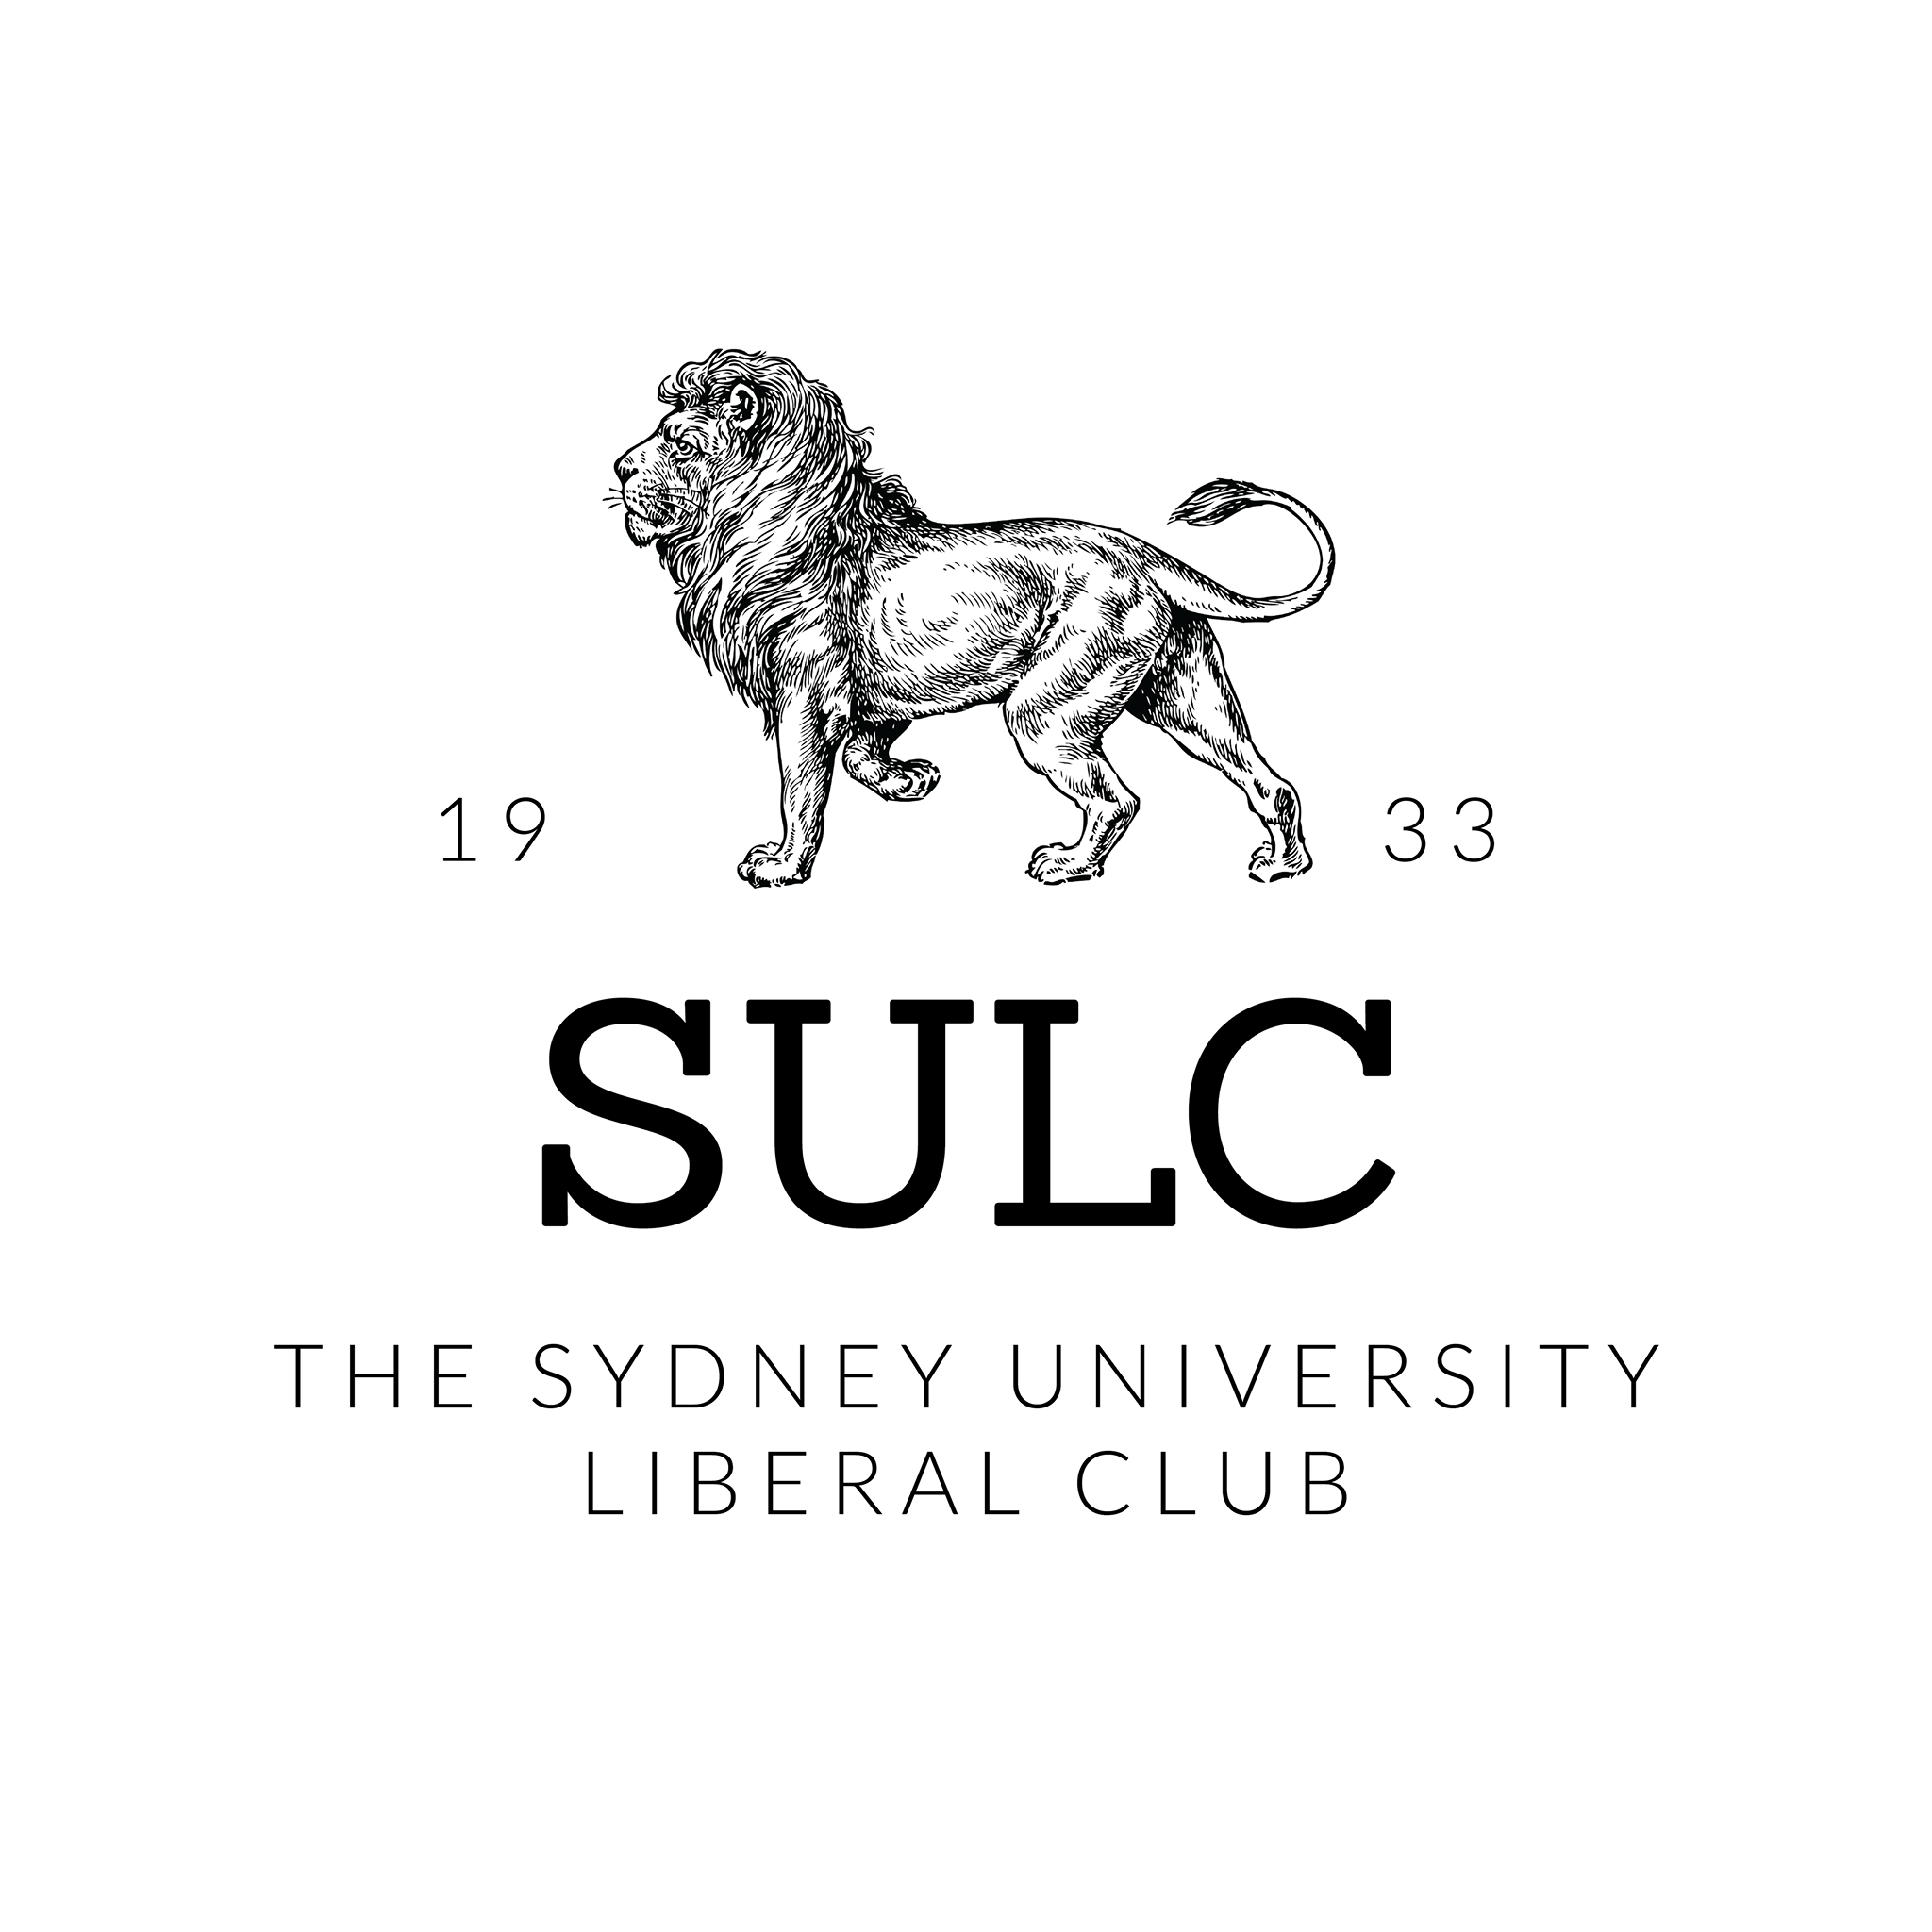 https://www.alsf.org.au/wp-content/uploads/2020/08/SULC.png